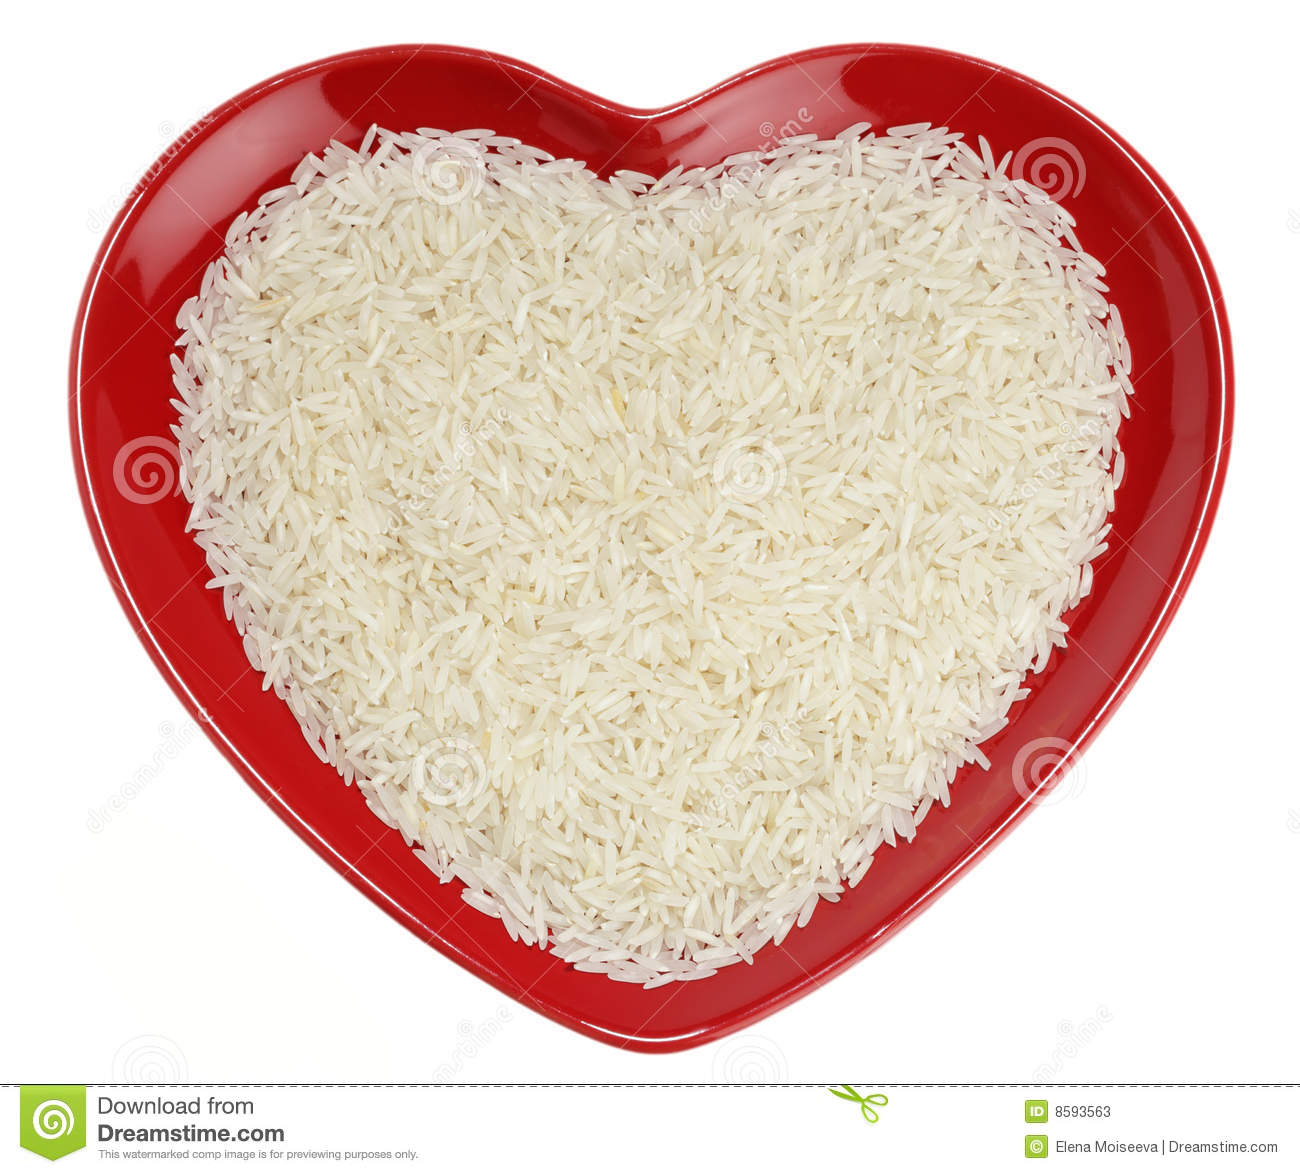 Traditionally Indian basmati Rice in red heart